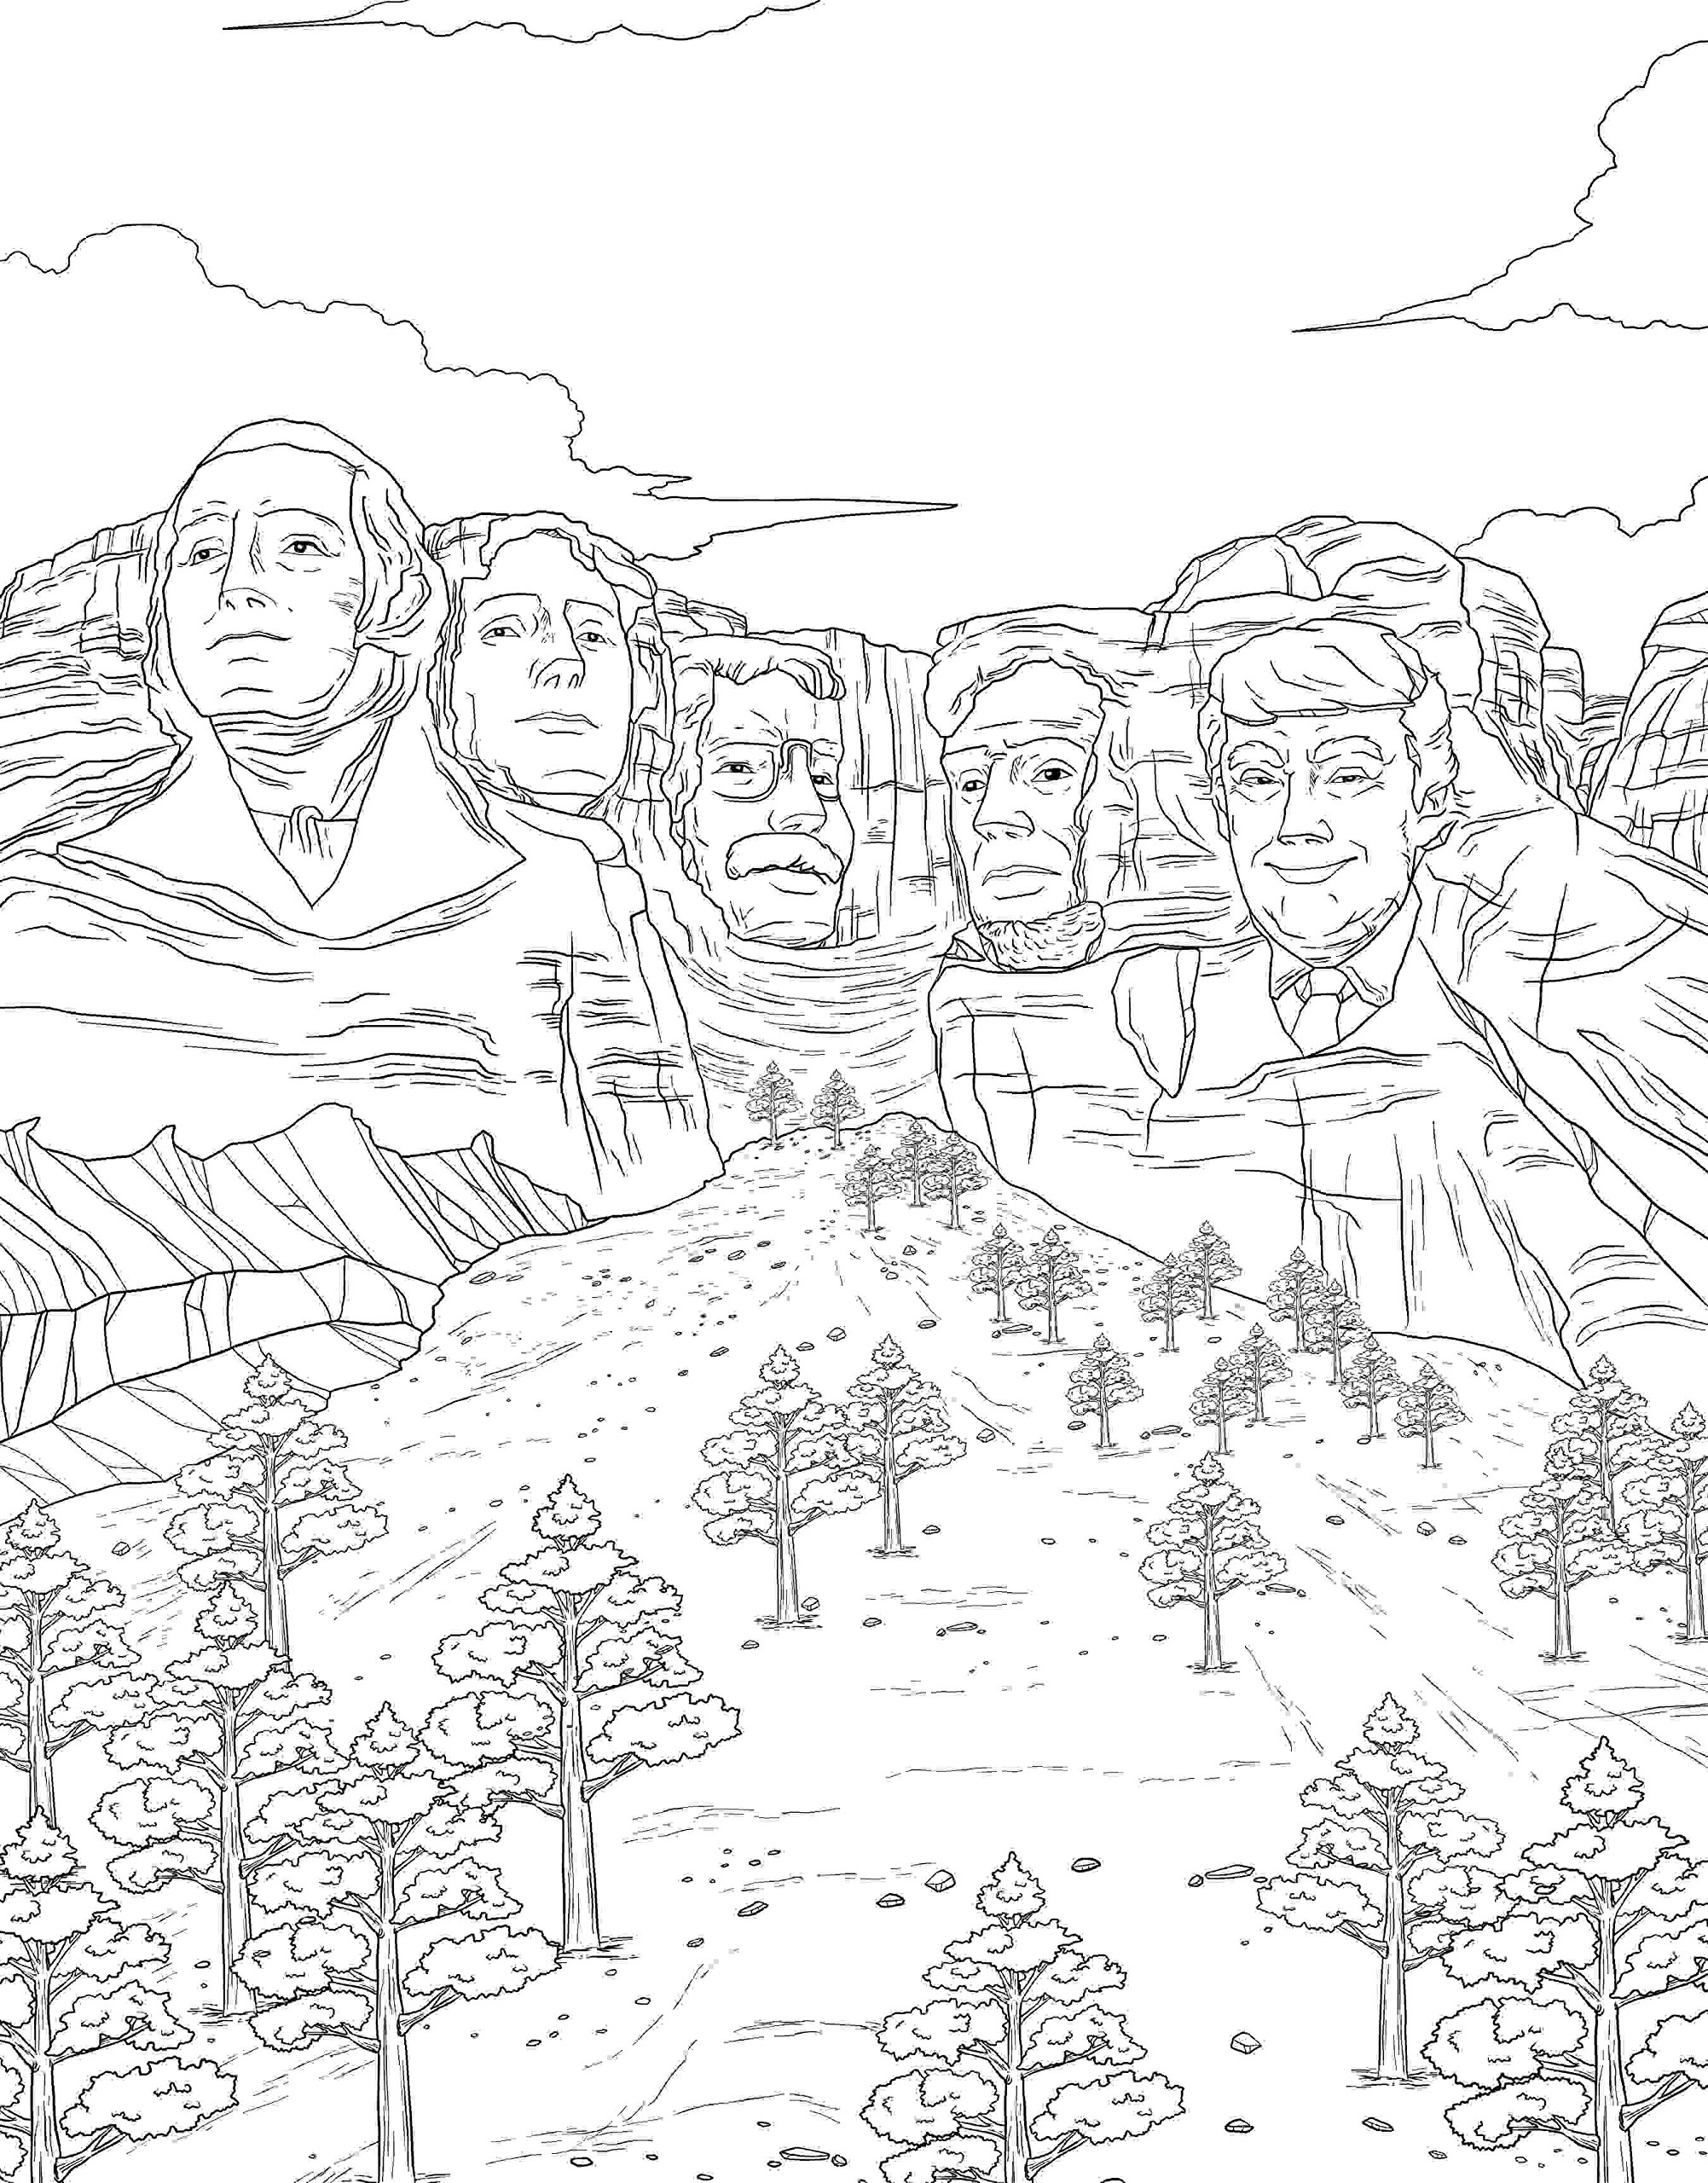 Donald Trump on Mt. Rushmore is only one of the 50 drawings in this coloring book (Photo via Amazon)